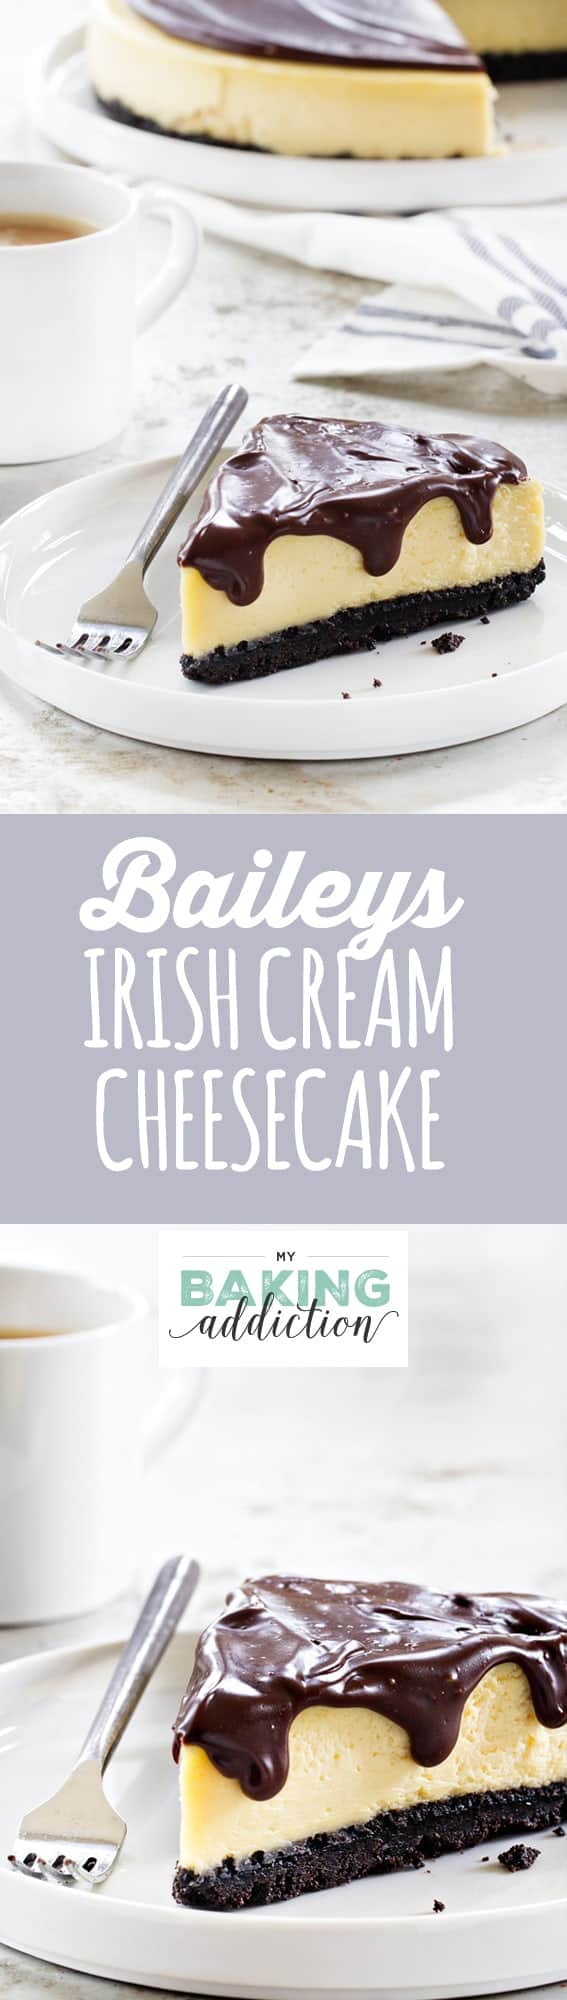 Baileys Irish Cream Cheesecake has a delightful chocolate cookie crust topped with Baileys spiked cheesecake and ganache layers. So good!